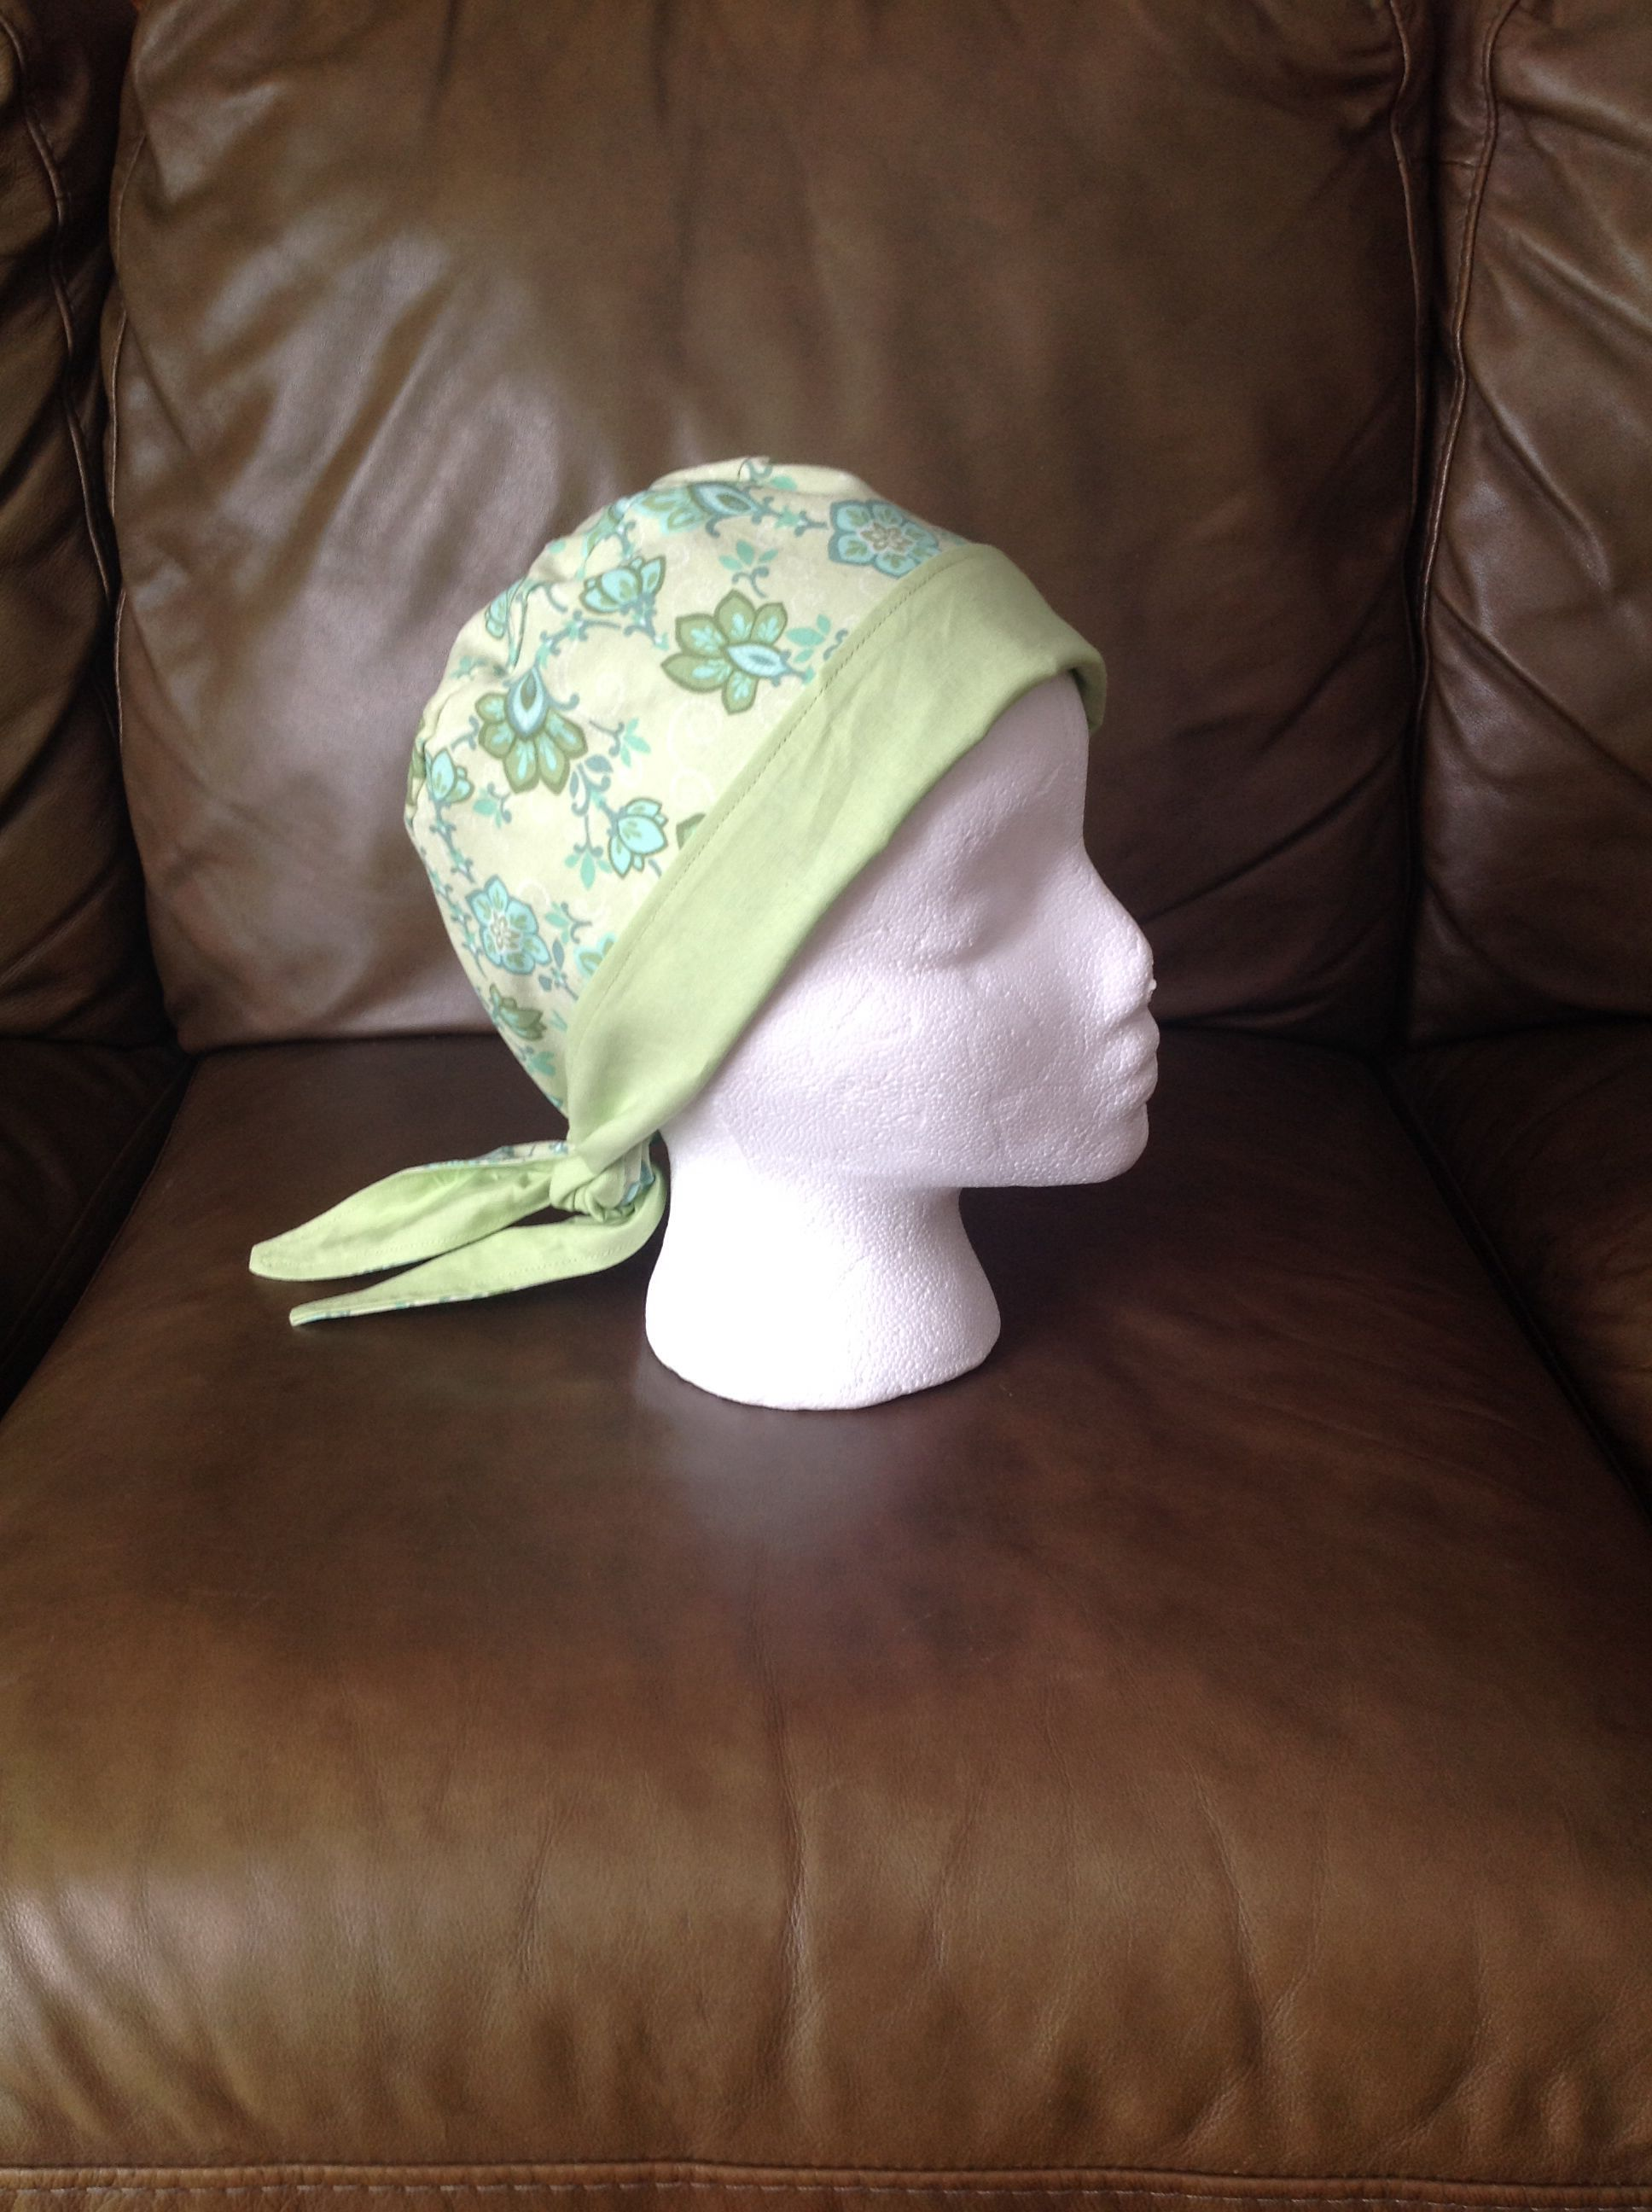 Cancer cap patterns to sew - Cancer cap sewing pattern